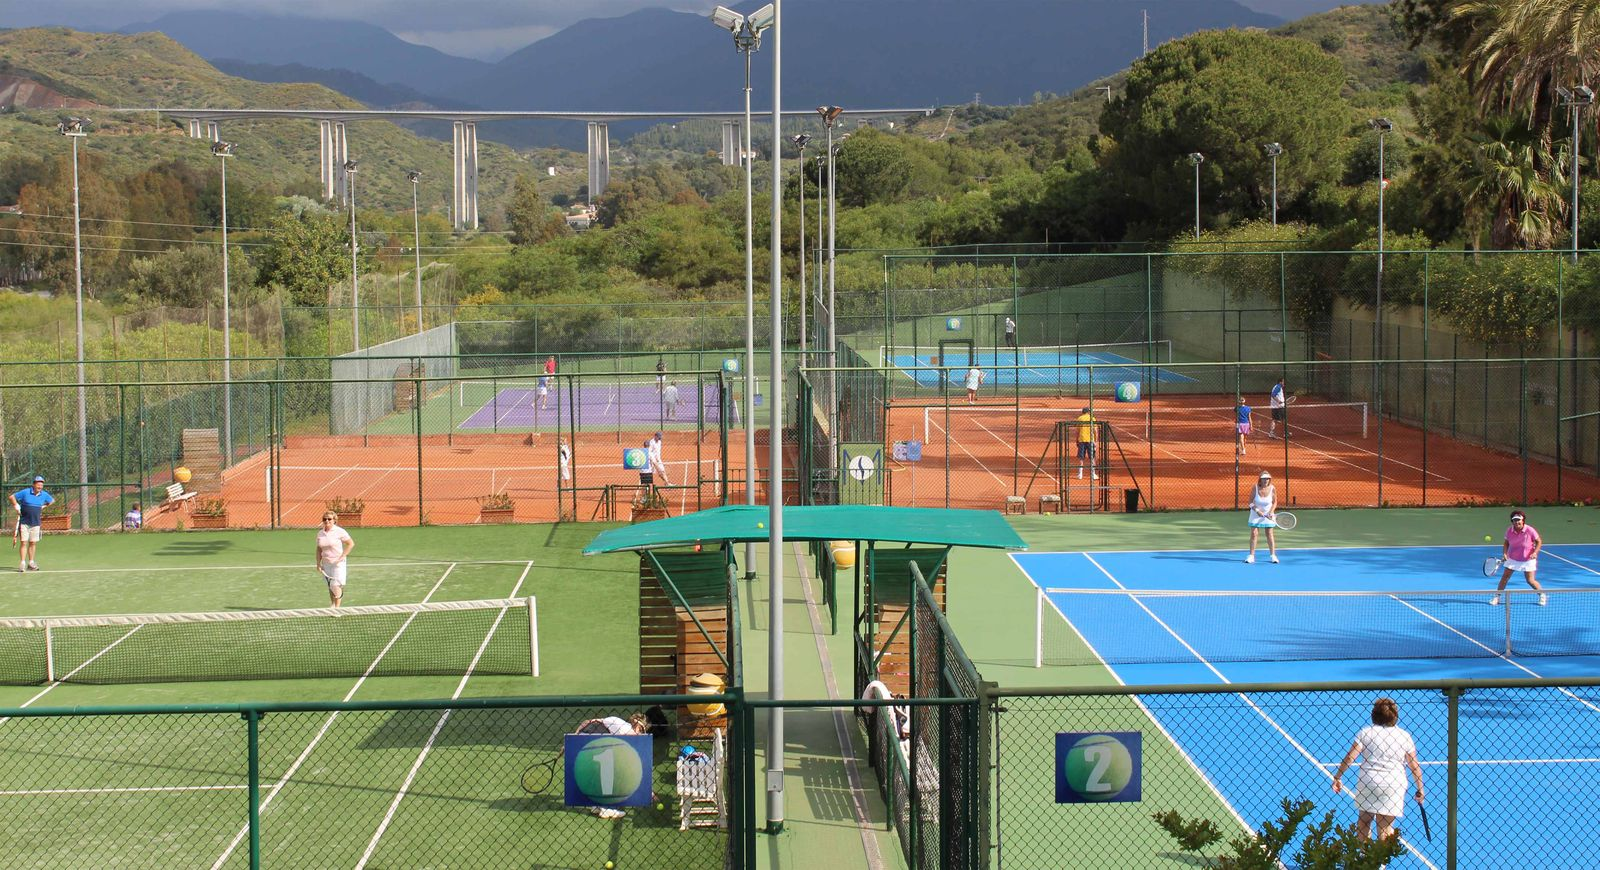 tennis-tourist-Manolo-Santana-Racquet-Club-Marbella-courtesy-Manolo-Santana-tennis-courts